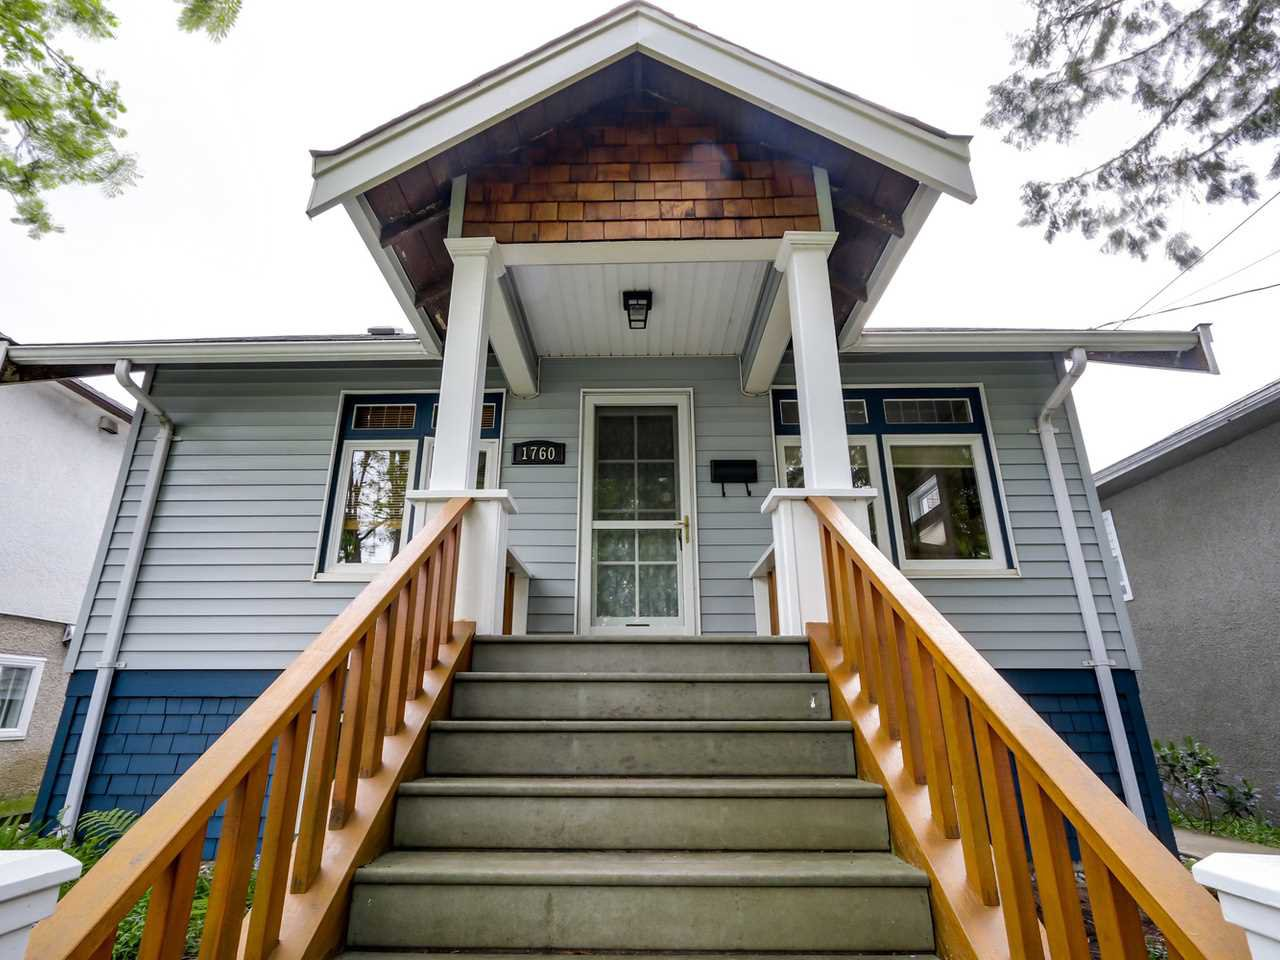 Photo 2: Photos: 1760 E 37TH AVENUE in Vancouver: Victoria VE House for sale (Vancouver East)  : MLS®# R2059026